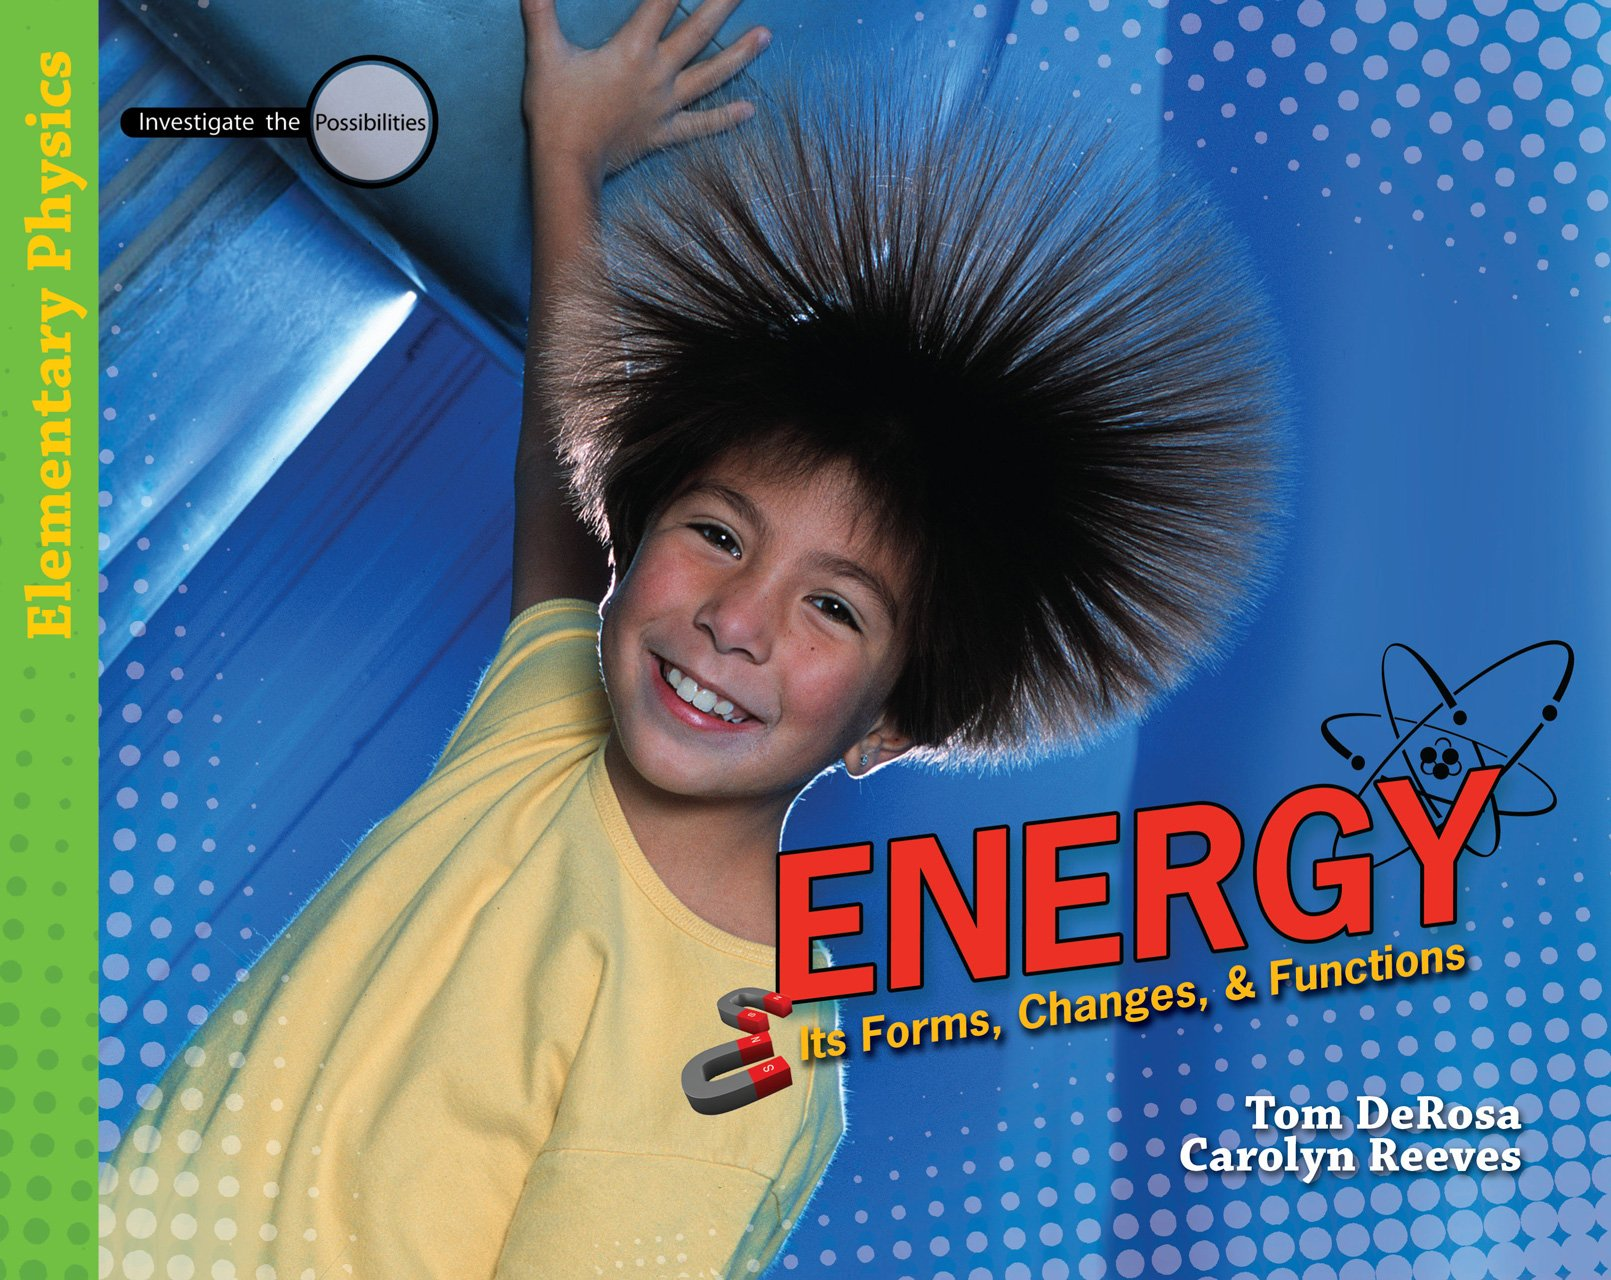 Energy: Its Forms, Changes, & Functions (Investigate the Possibilities: Elementary Physics) pdf epub